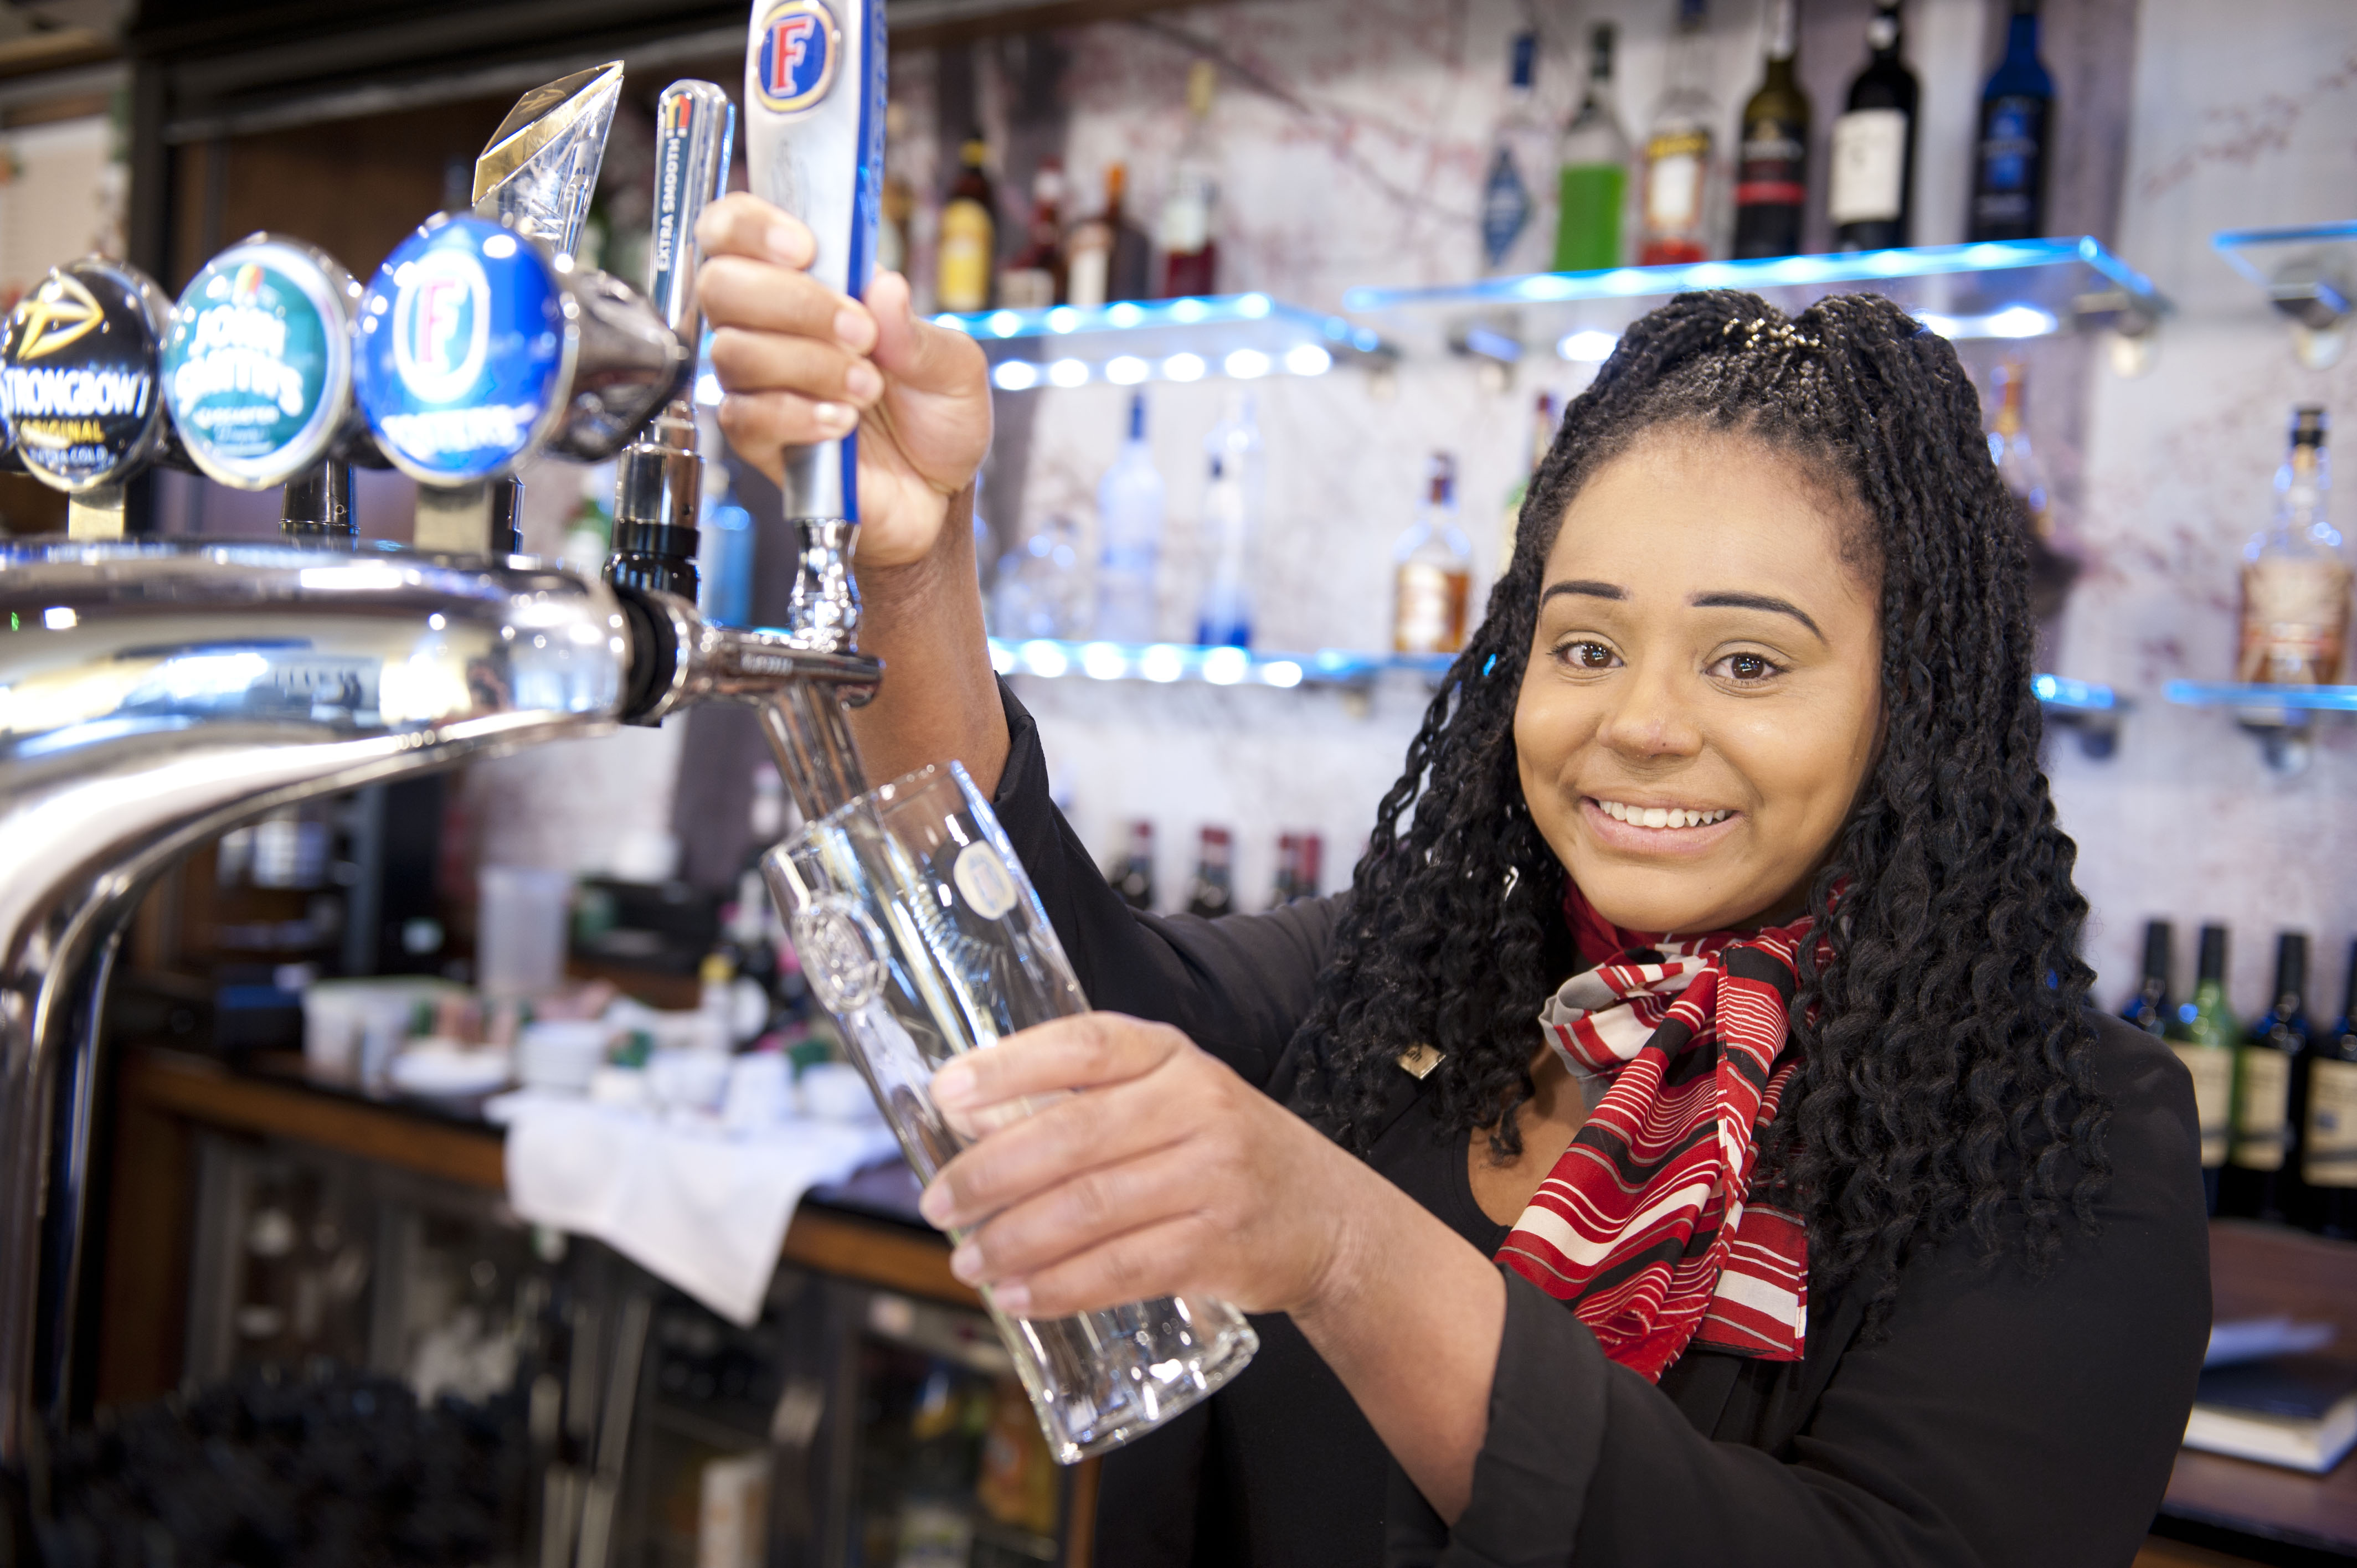 Sheffield Hotels Launch Pilot Apprenticeship To Tackle Skills Shortages